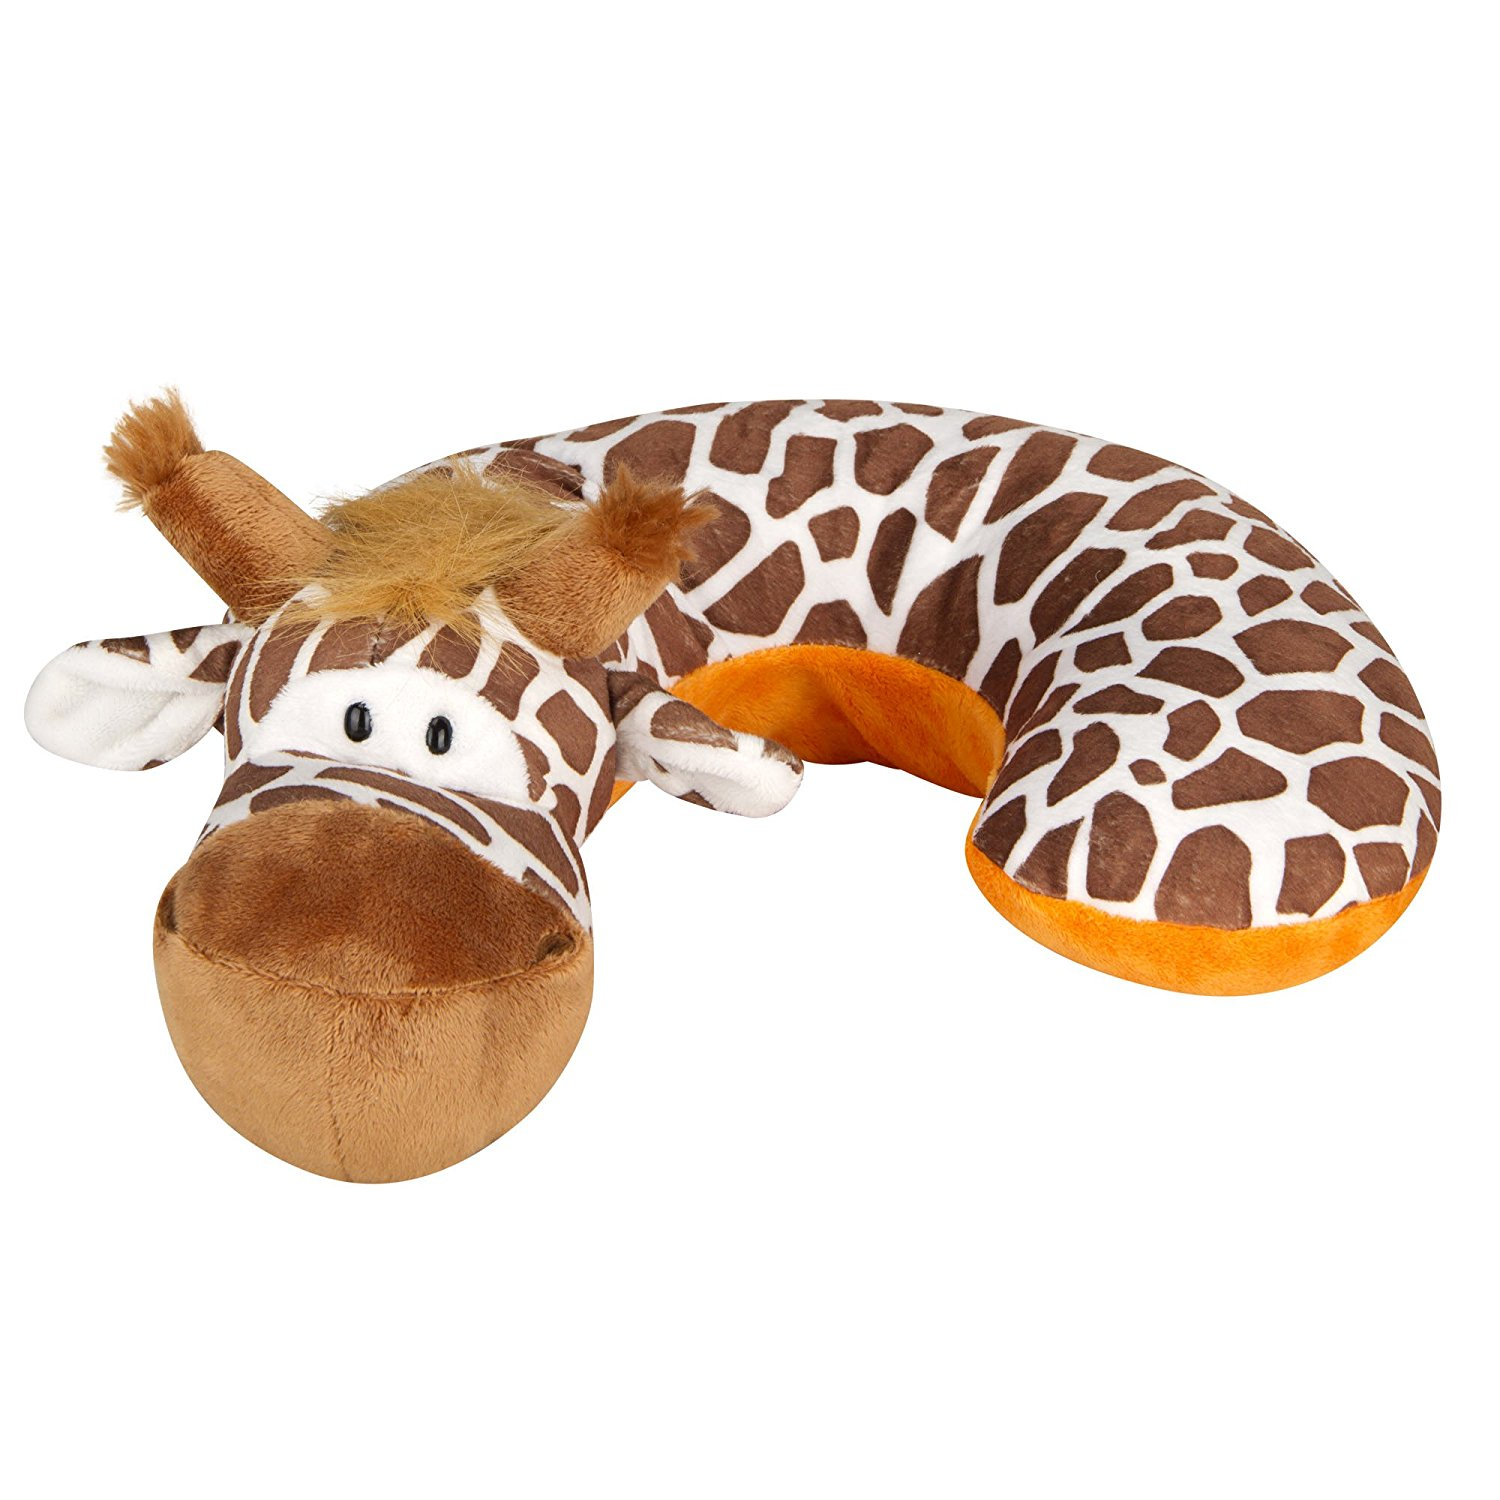 Kid's Neck Support Pillow, Giraffe, Brown, White, Orange, Toddler Car Seat Pillow, Baby Head Support, Child... by Animal Planet